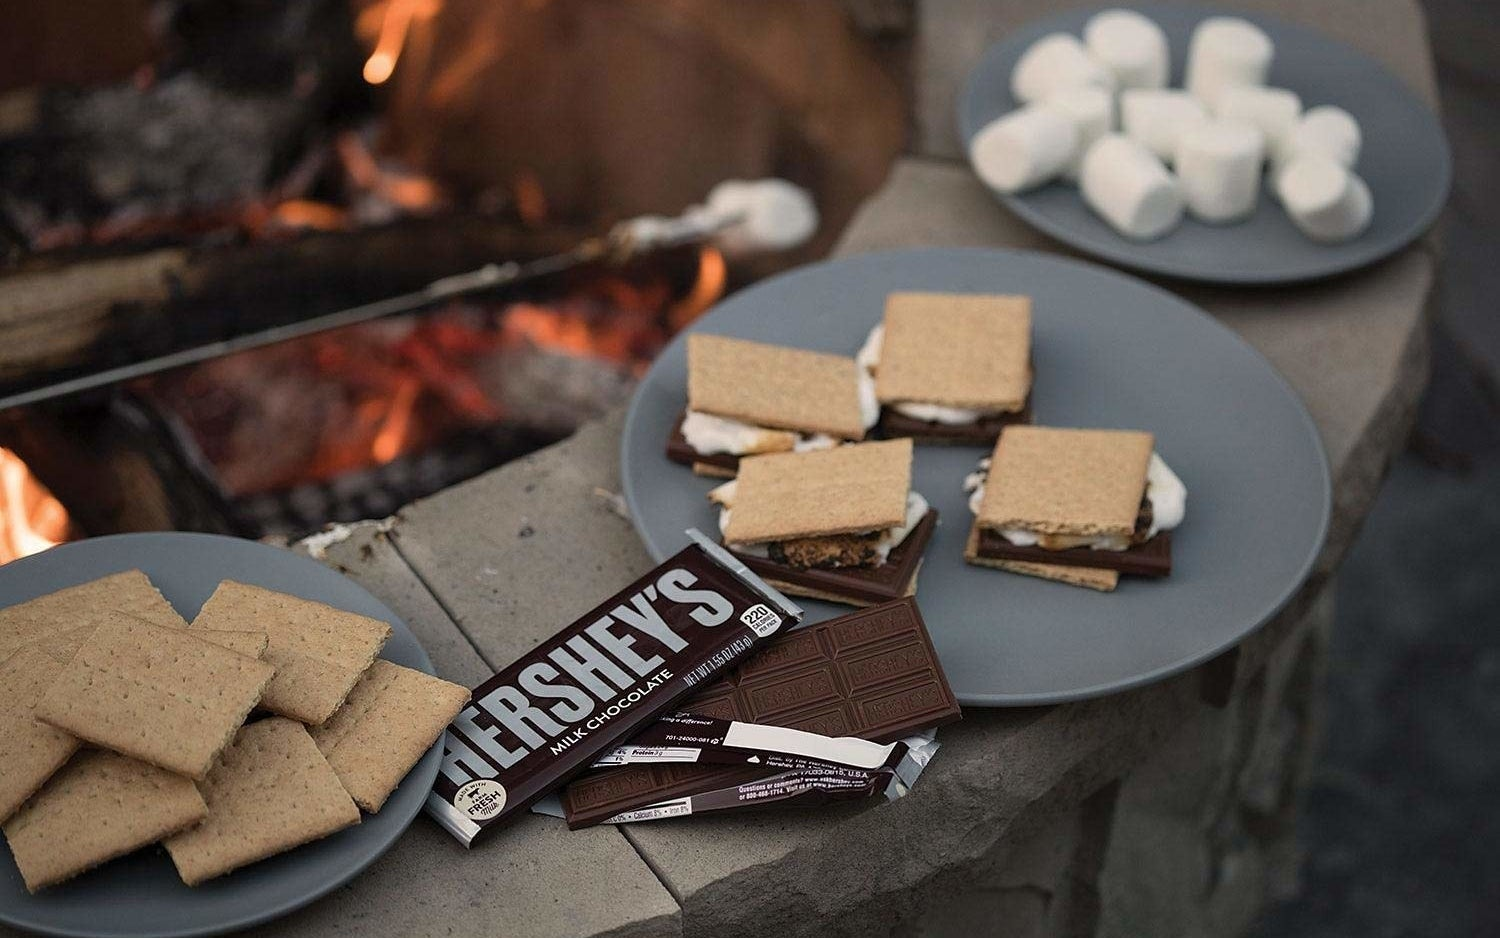 an open hershey's chocolate bar next to a plate of s'mores nearby a fire